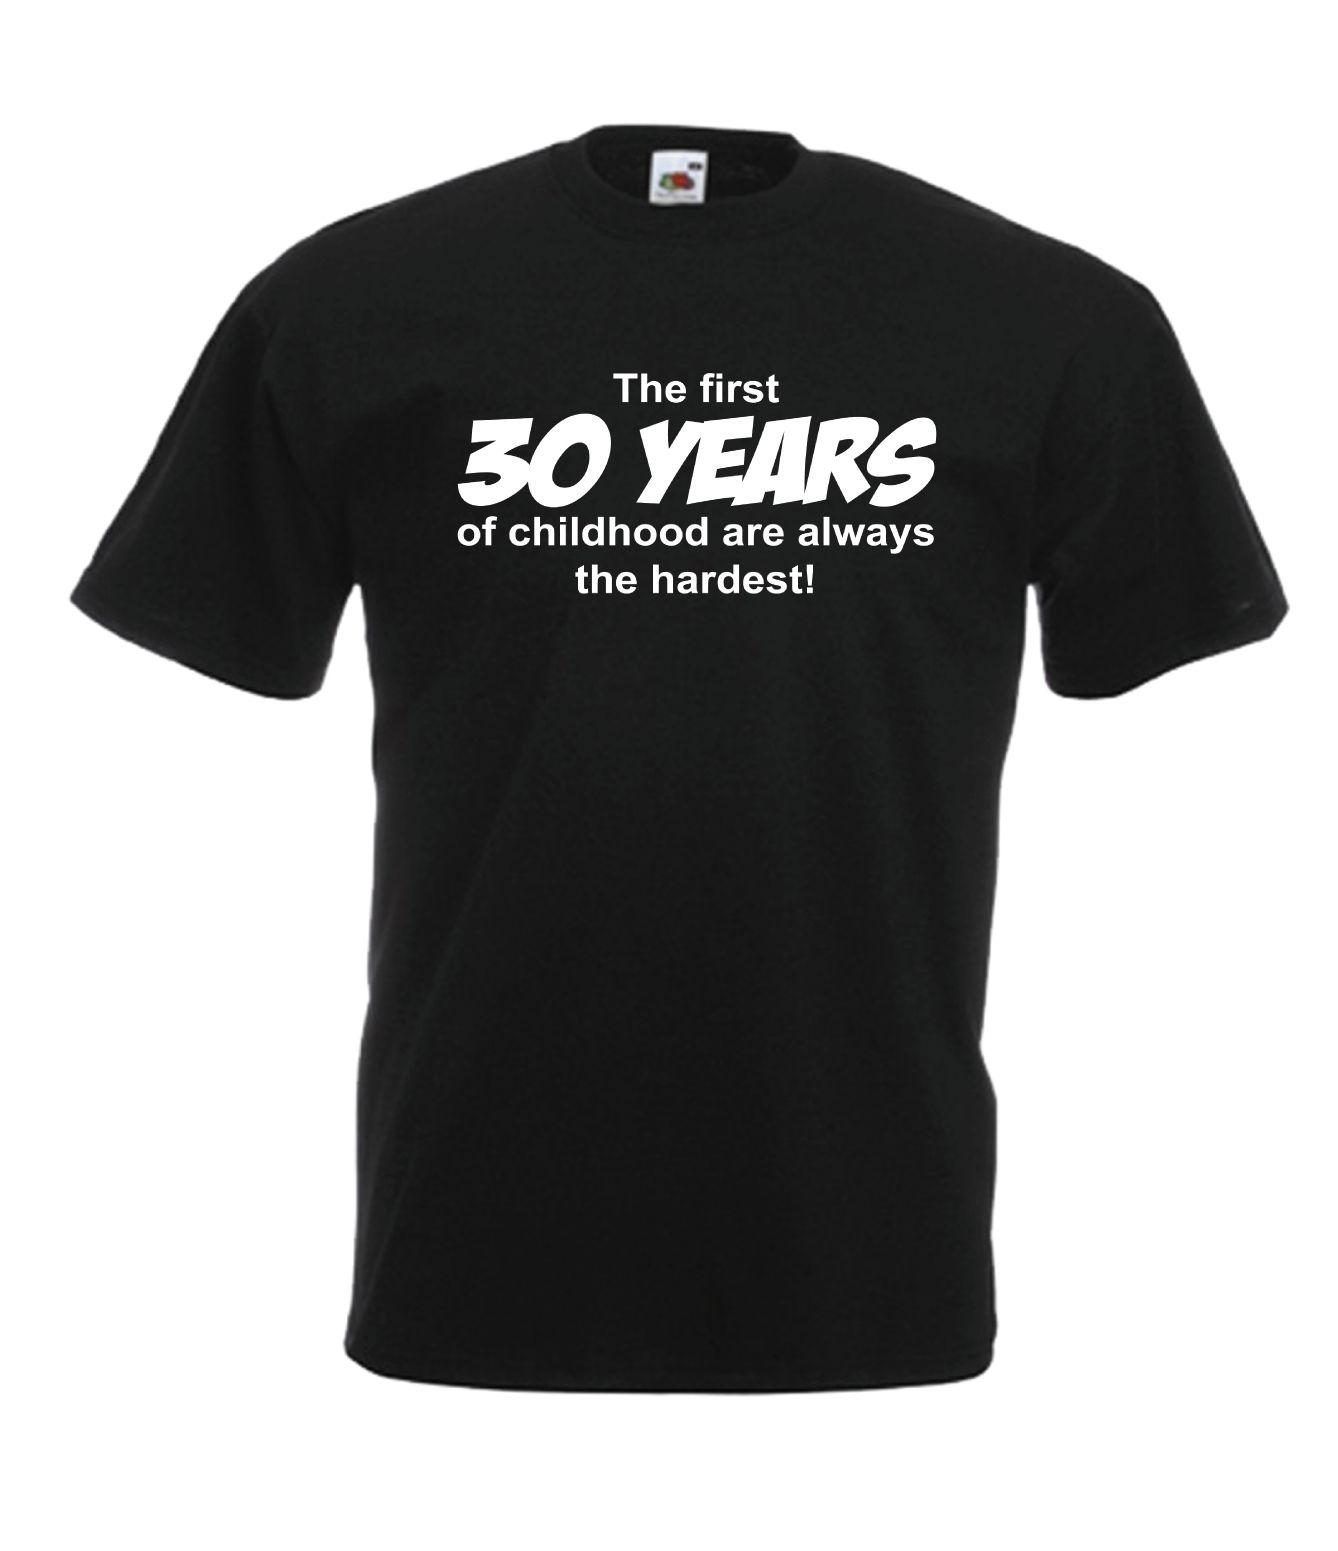 30th BIRTHDAY Funny Party Present Gift Ideas Fashion Top Tee Mens Womens T SHIRT Size Discout Hot New Tshirt Hoodie Hip Hop Shirt Tourist Fun